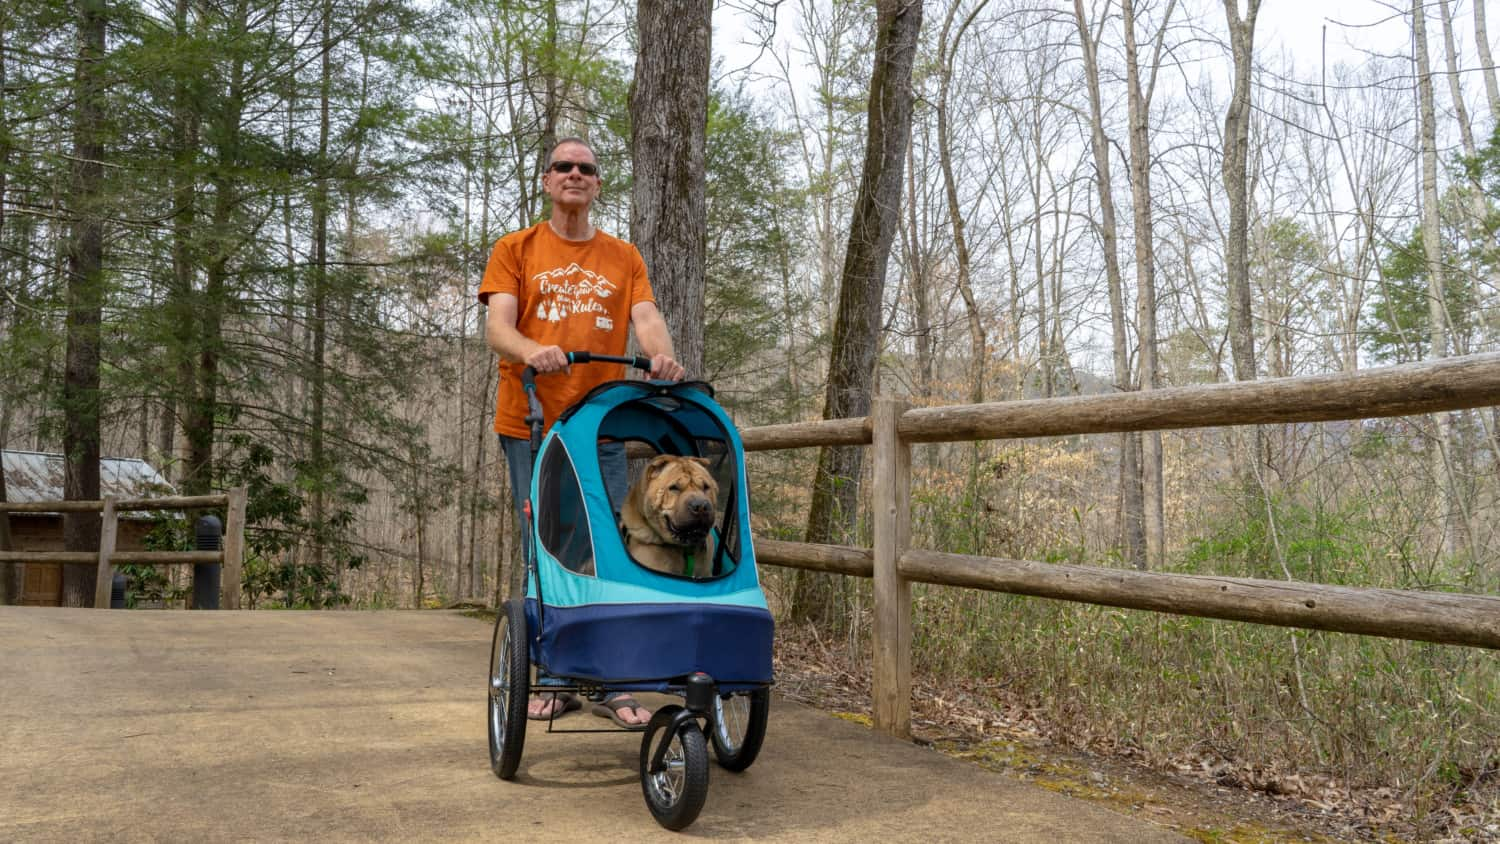 Ty the Shar-pei riding in the Petique All Terrain Pet Jogger stroller for dogs